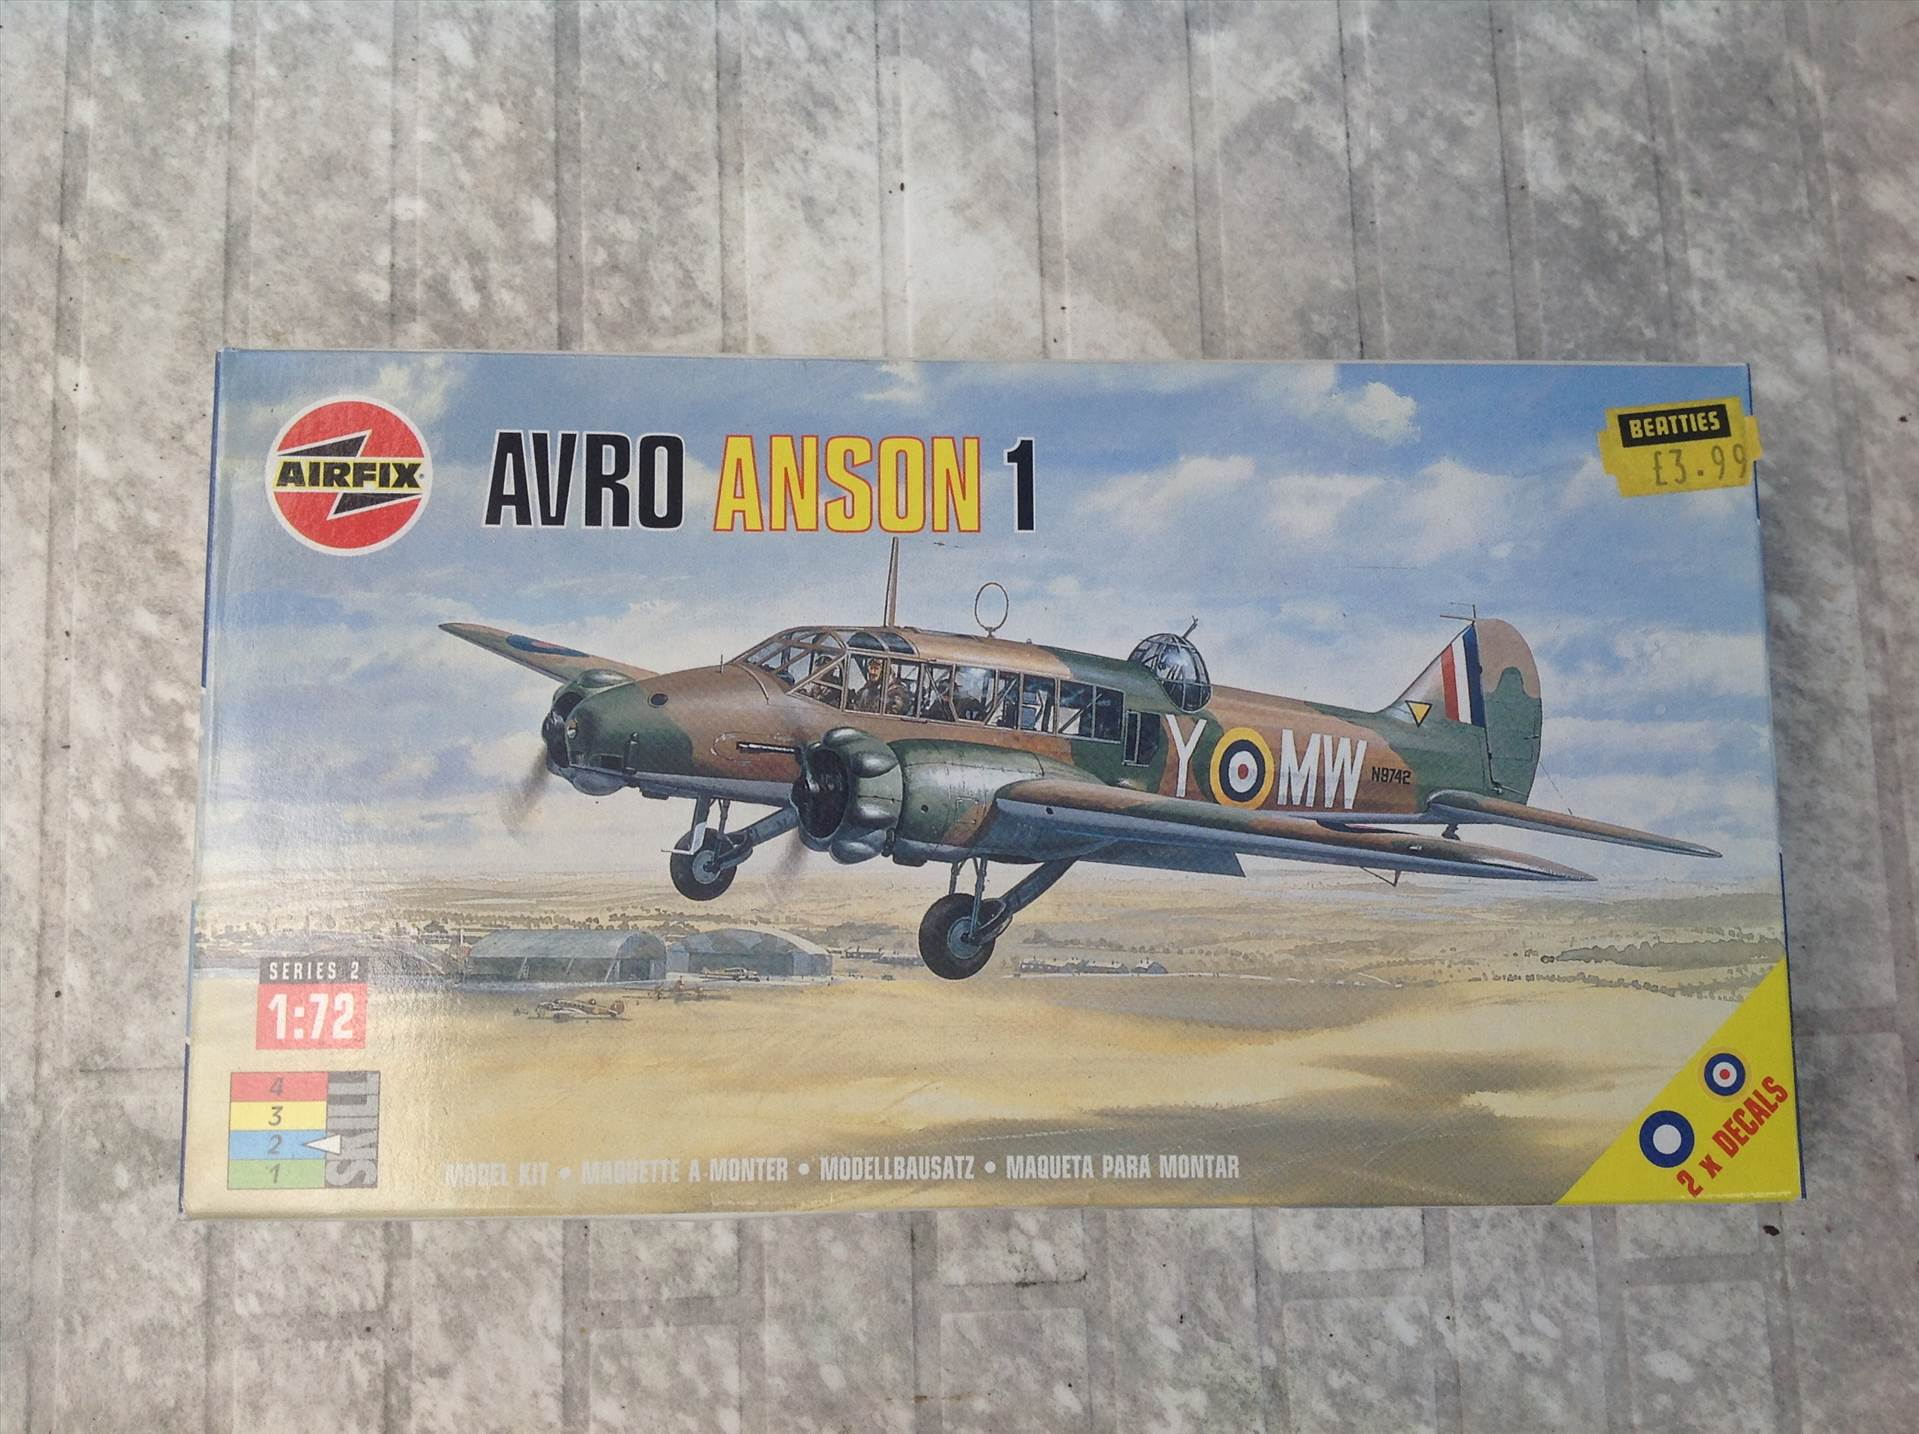 Avro Anson Mk1 +++ FINISHED +++ - Airfix: The Golden Years GB